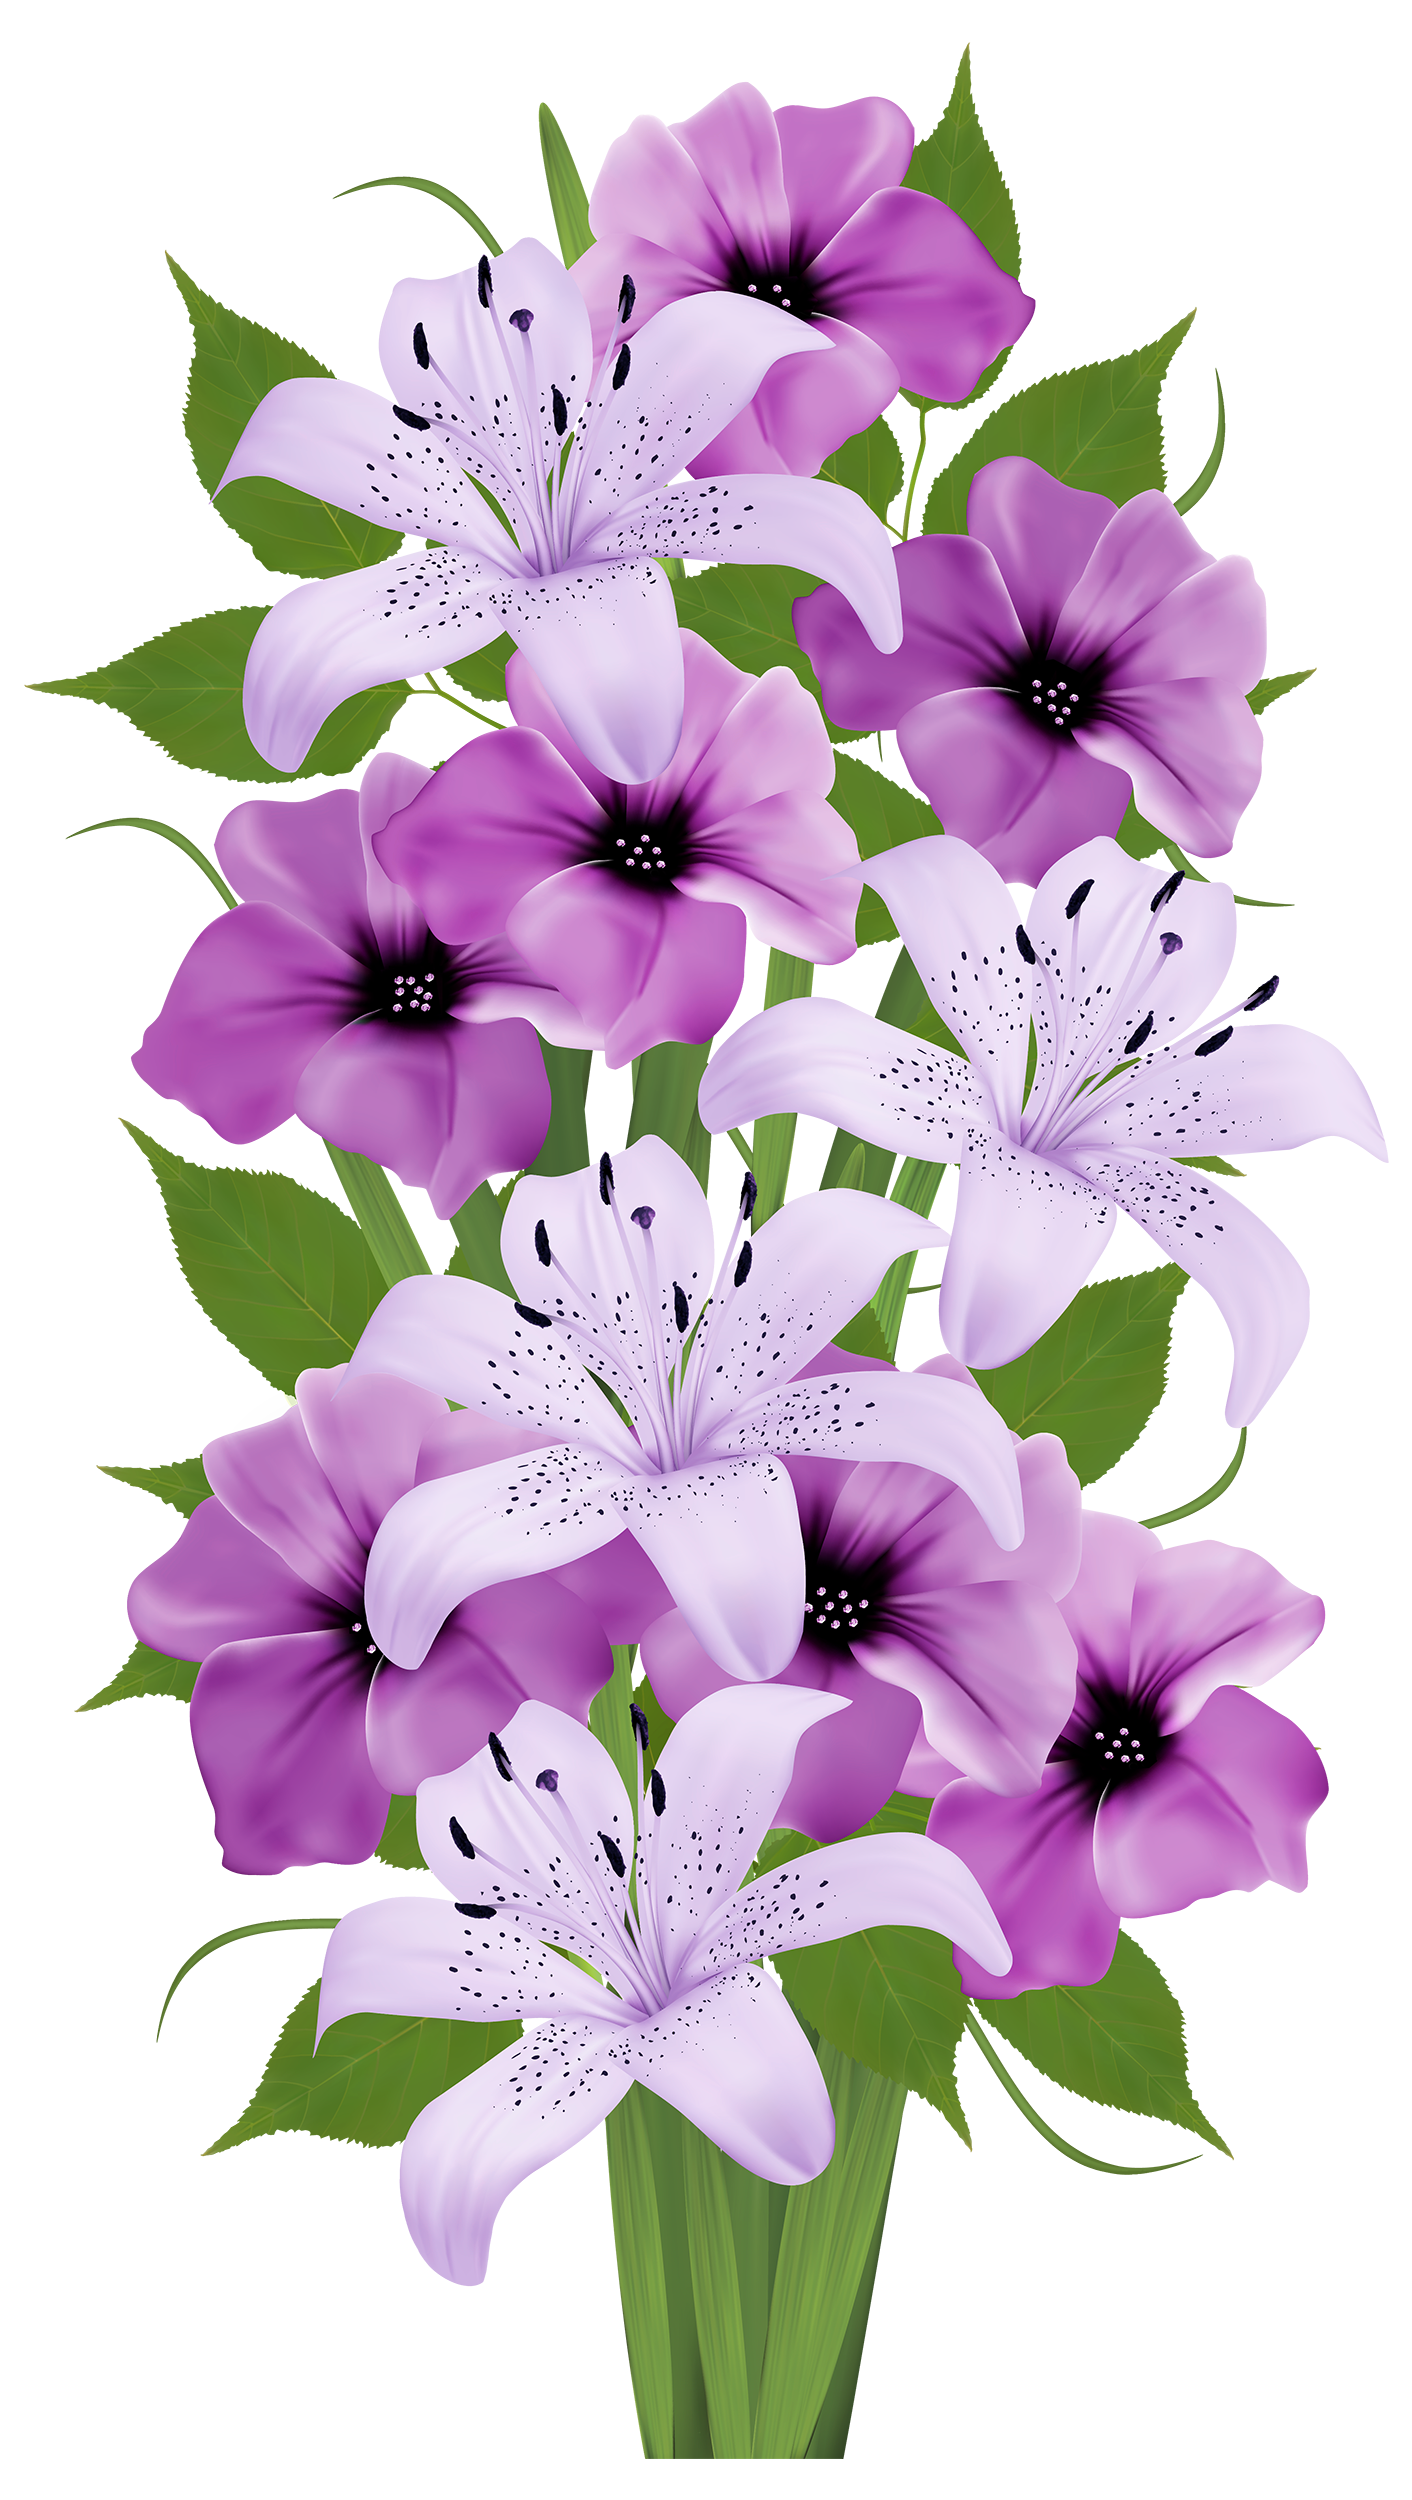 Purple Lilies Bouquet Clip Art Everyday For Cards Scrapbooking